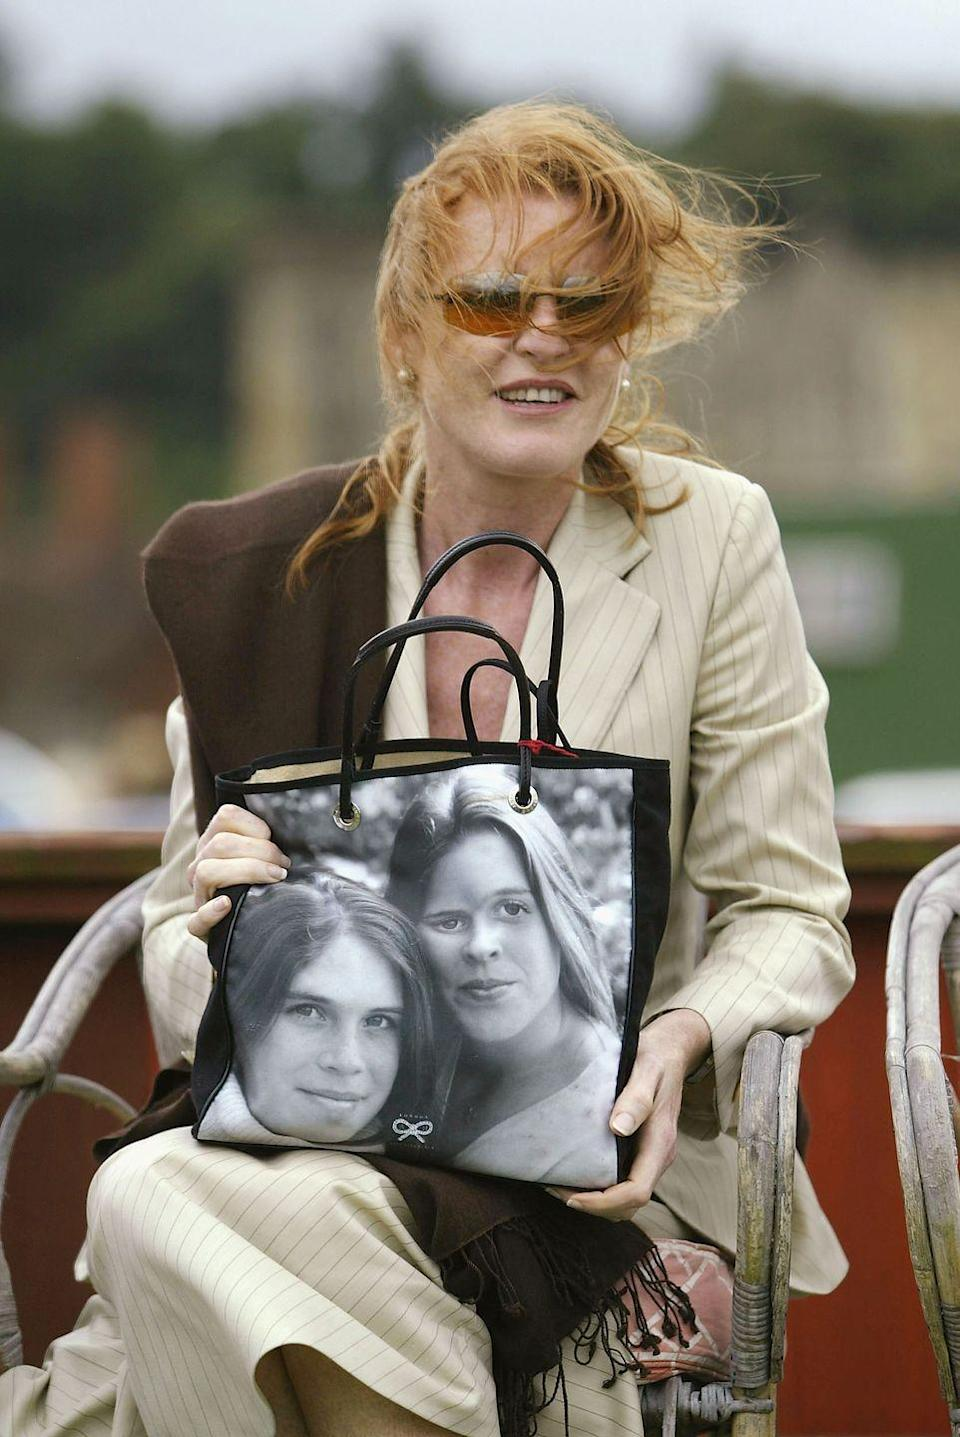 <p>In classic mom fashion, Sarah Ferguson shows off a bag printed with a photo of her daughters, Princesses Eugenie and Beatrice, at the Cowdray Park Polo Club. </p>